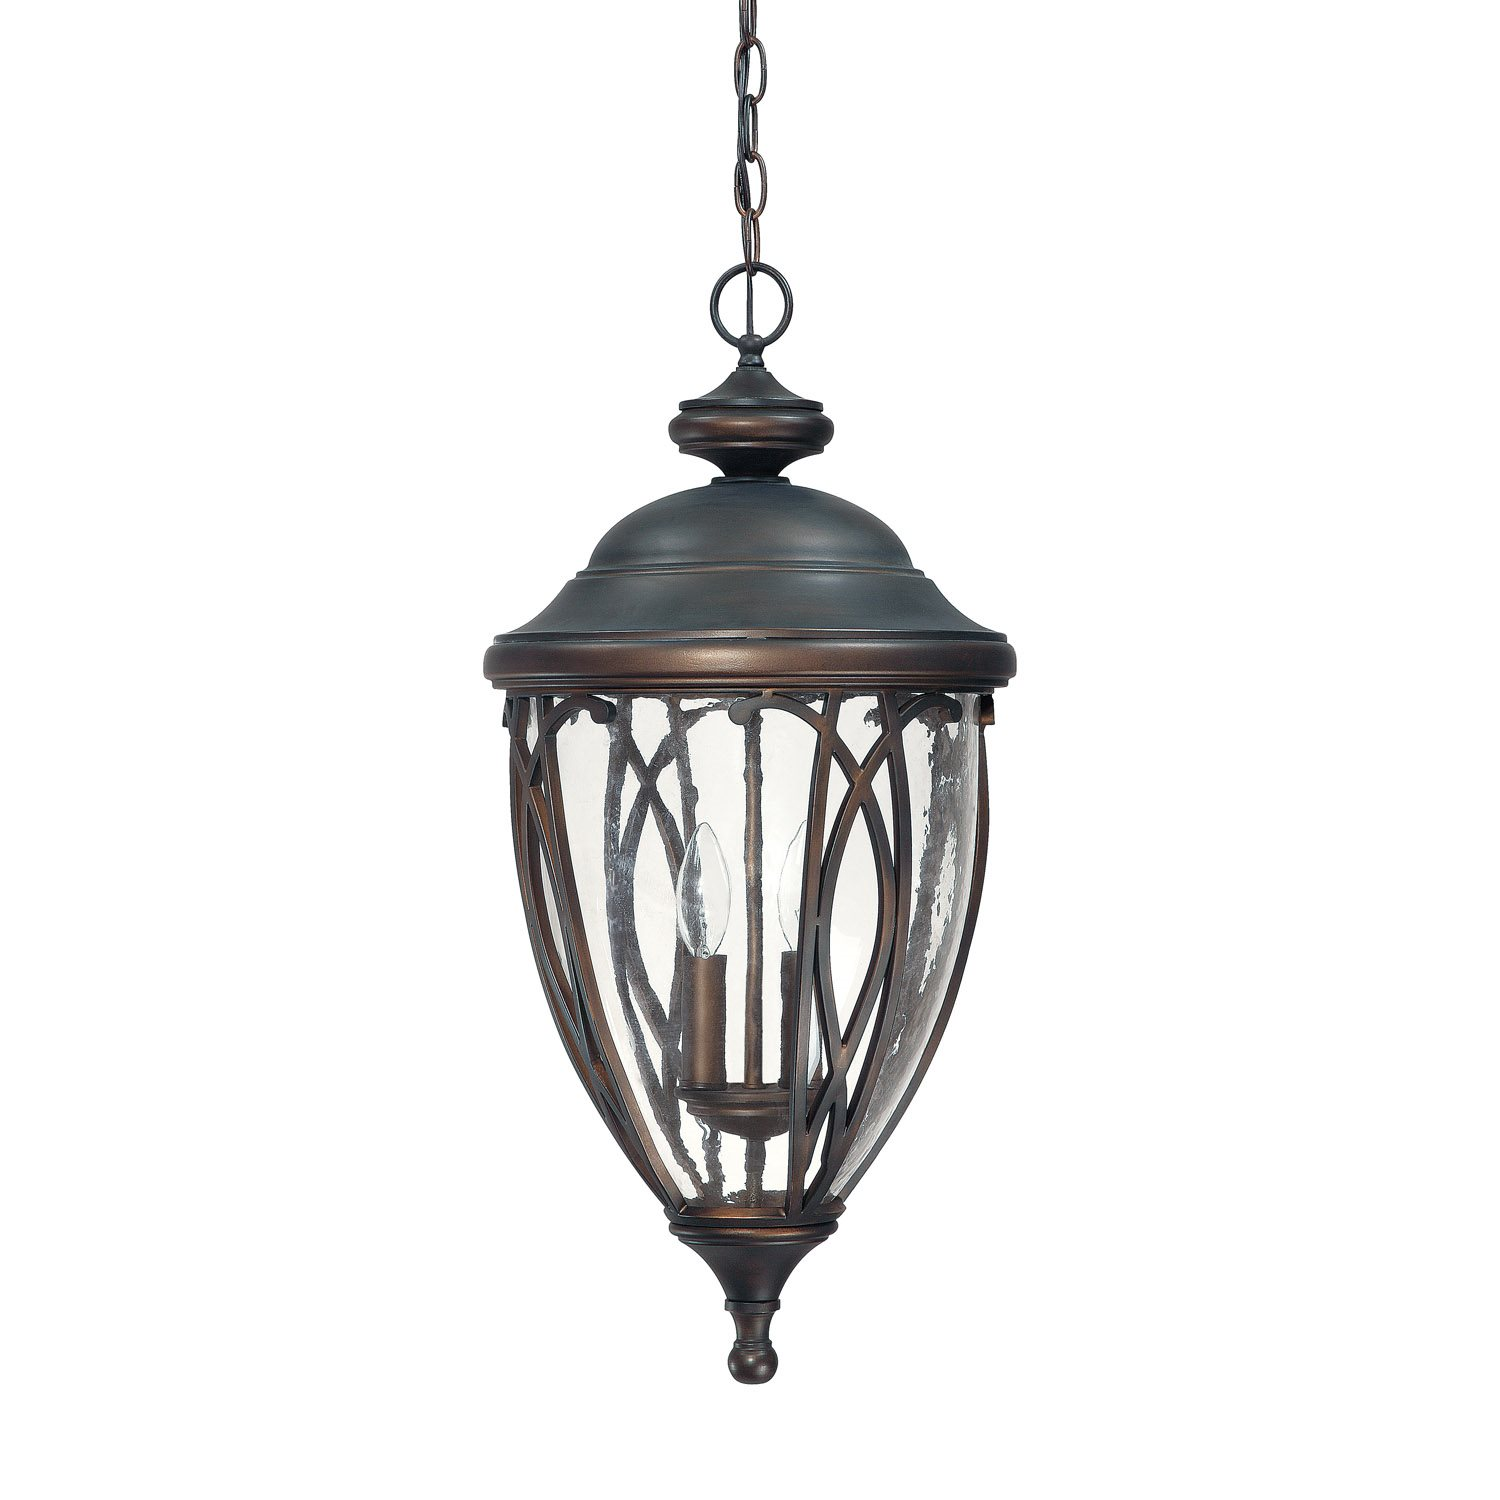 Capital Lighting 9456OB Astor Transitional Outdoor Hanging